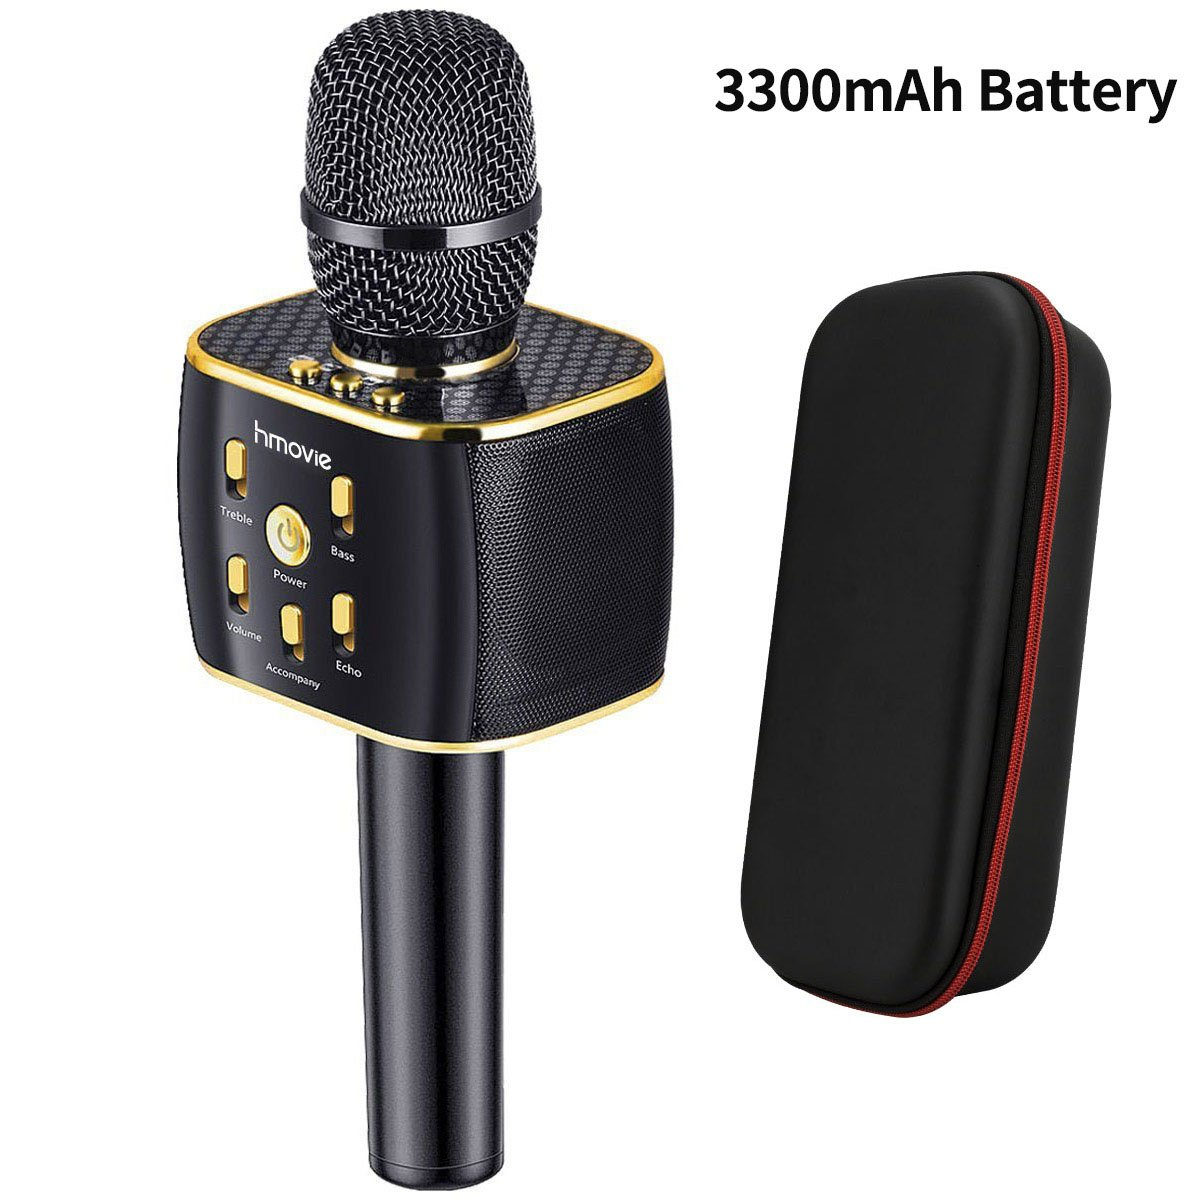 3300mAh Wireless Karaoke Microphone 12w Hi-Fi Bluetooth Speaker Player for iPhone Android Smartphone hmovie K3B33